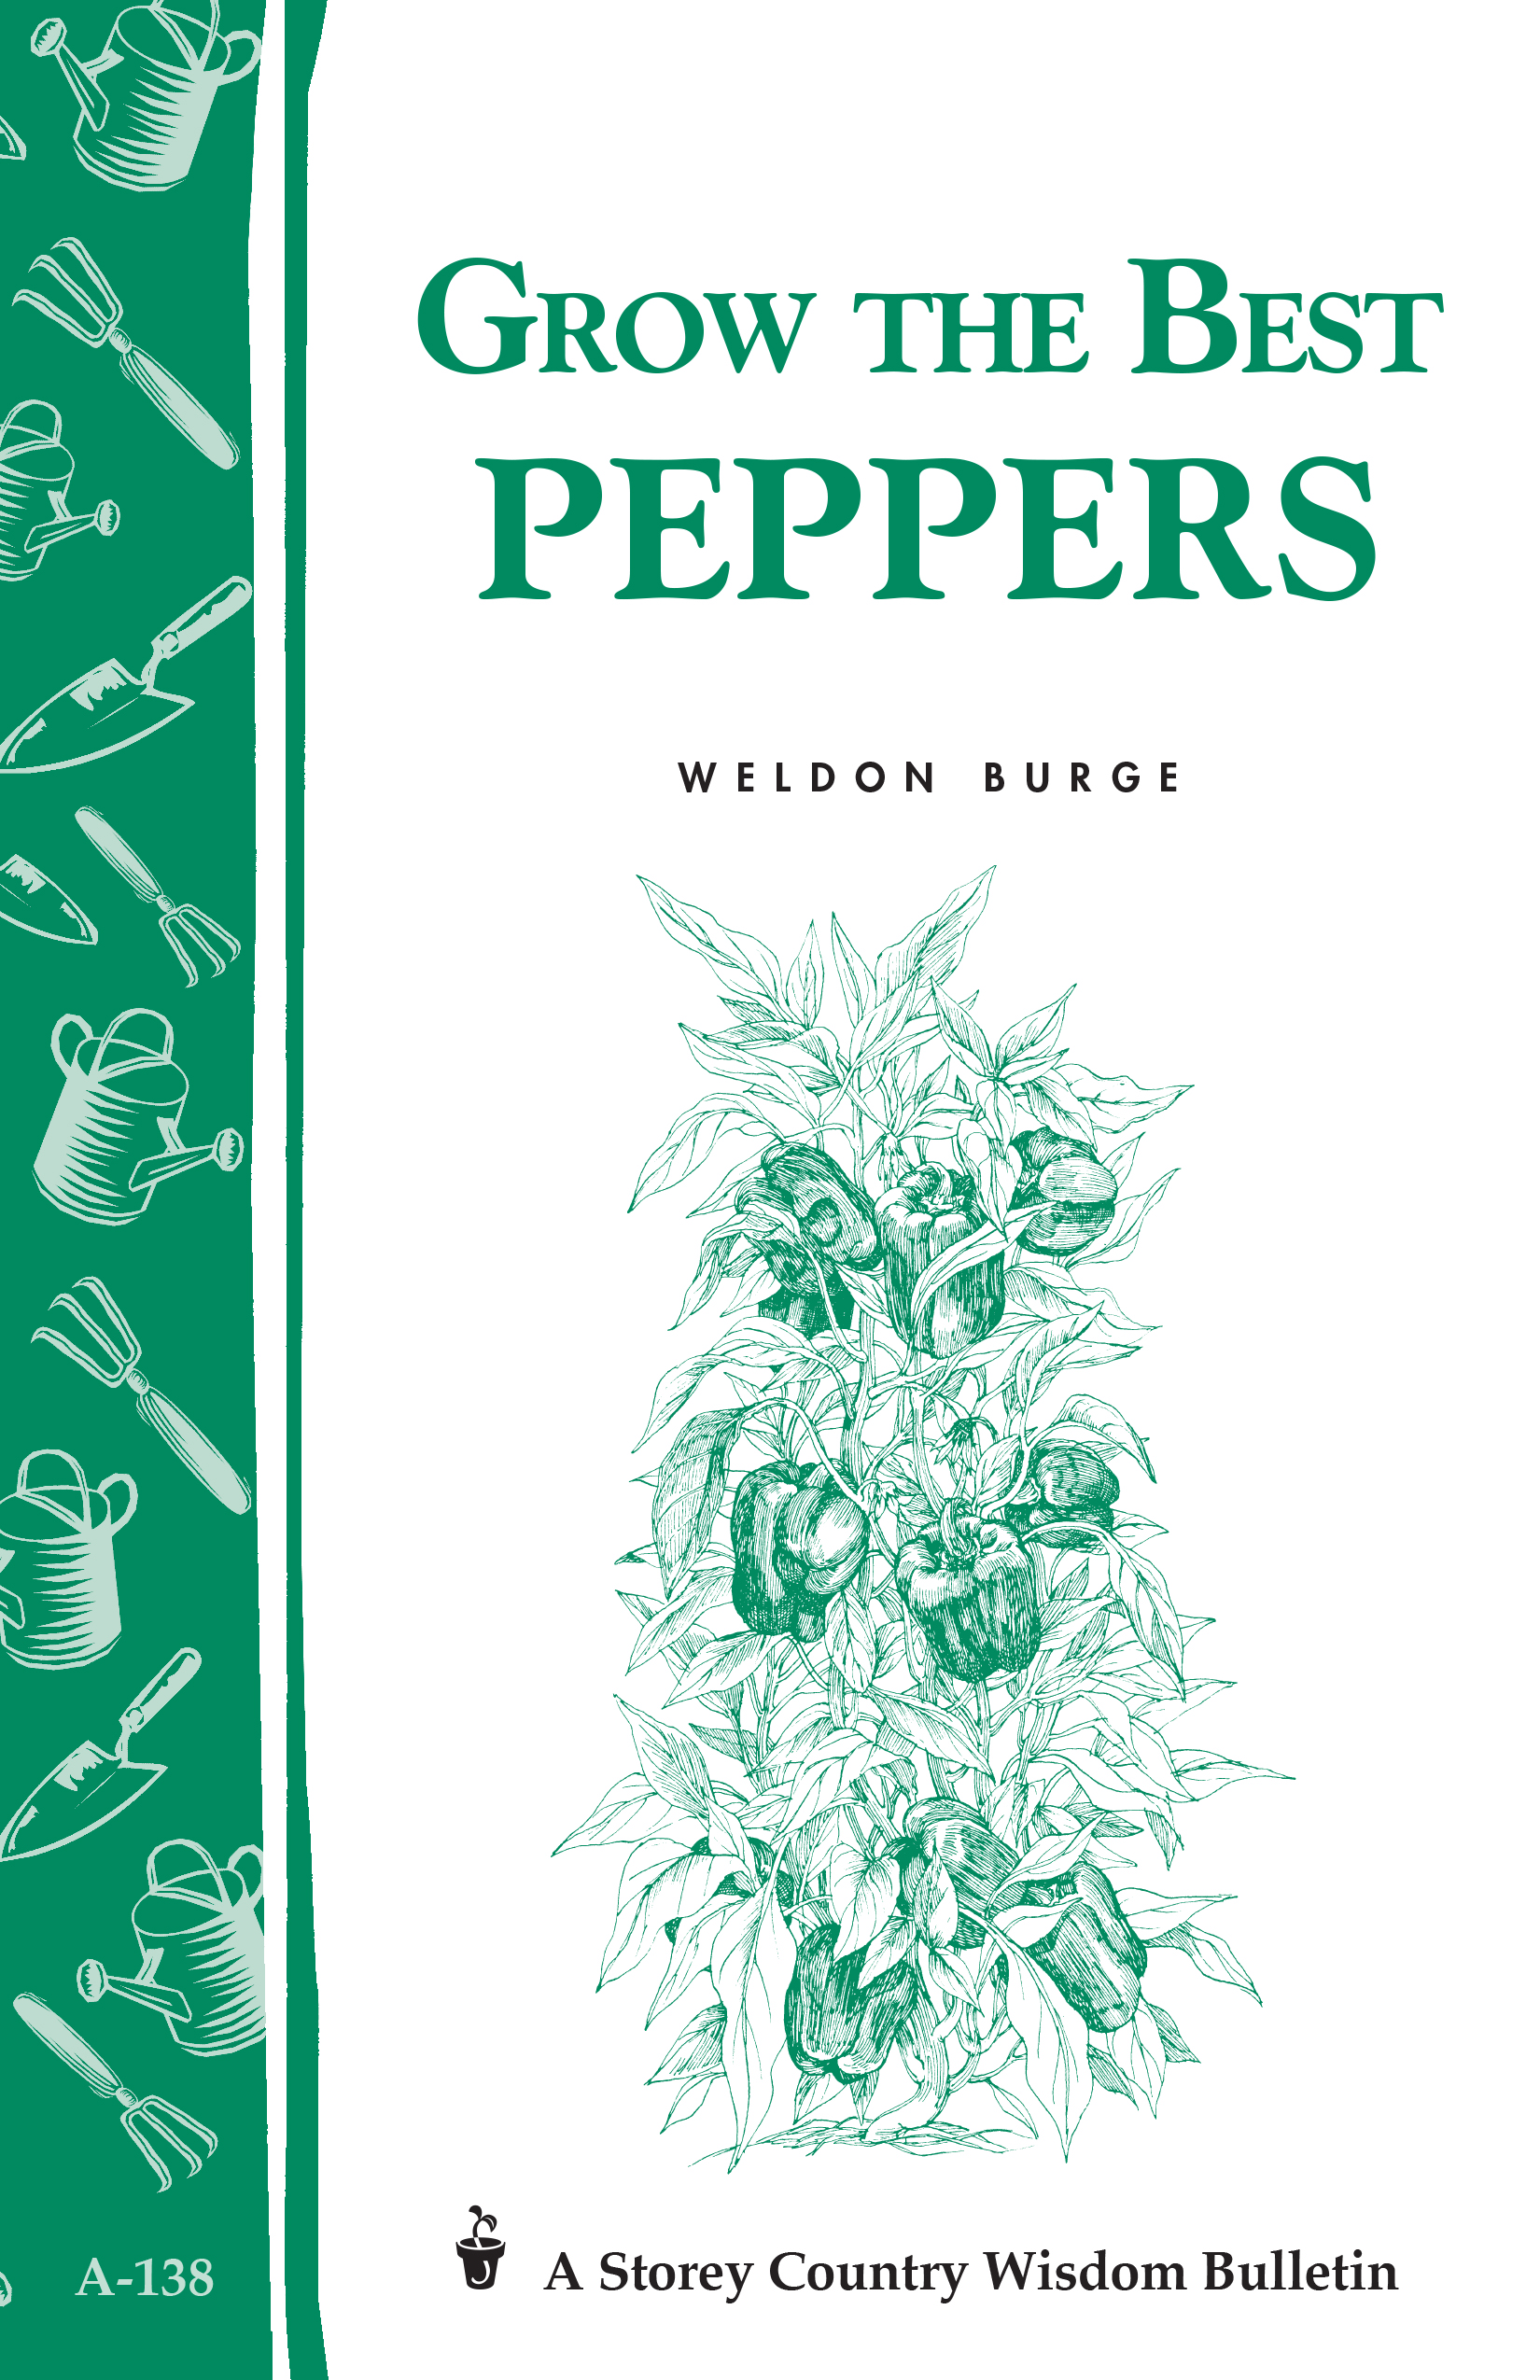 Grow the Best Peppers Storey's Country Wisdom Bulletin A-138 - Weldon Burge